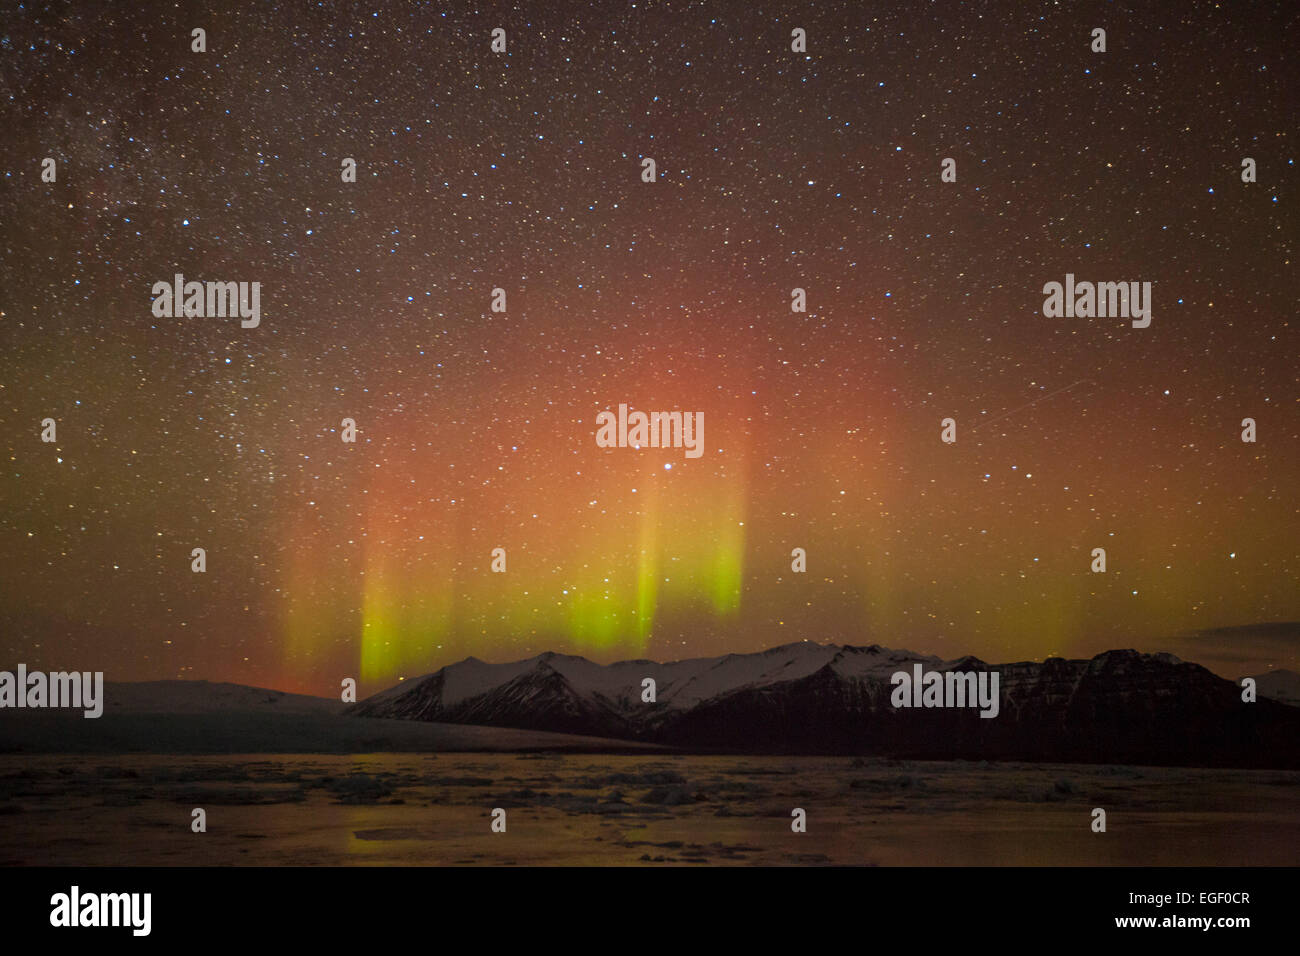 Aurora borealis or Northern Lights Jokulsarlon Iceland Europe - Stock Image